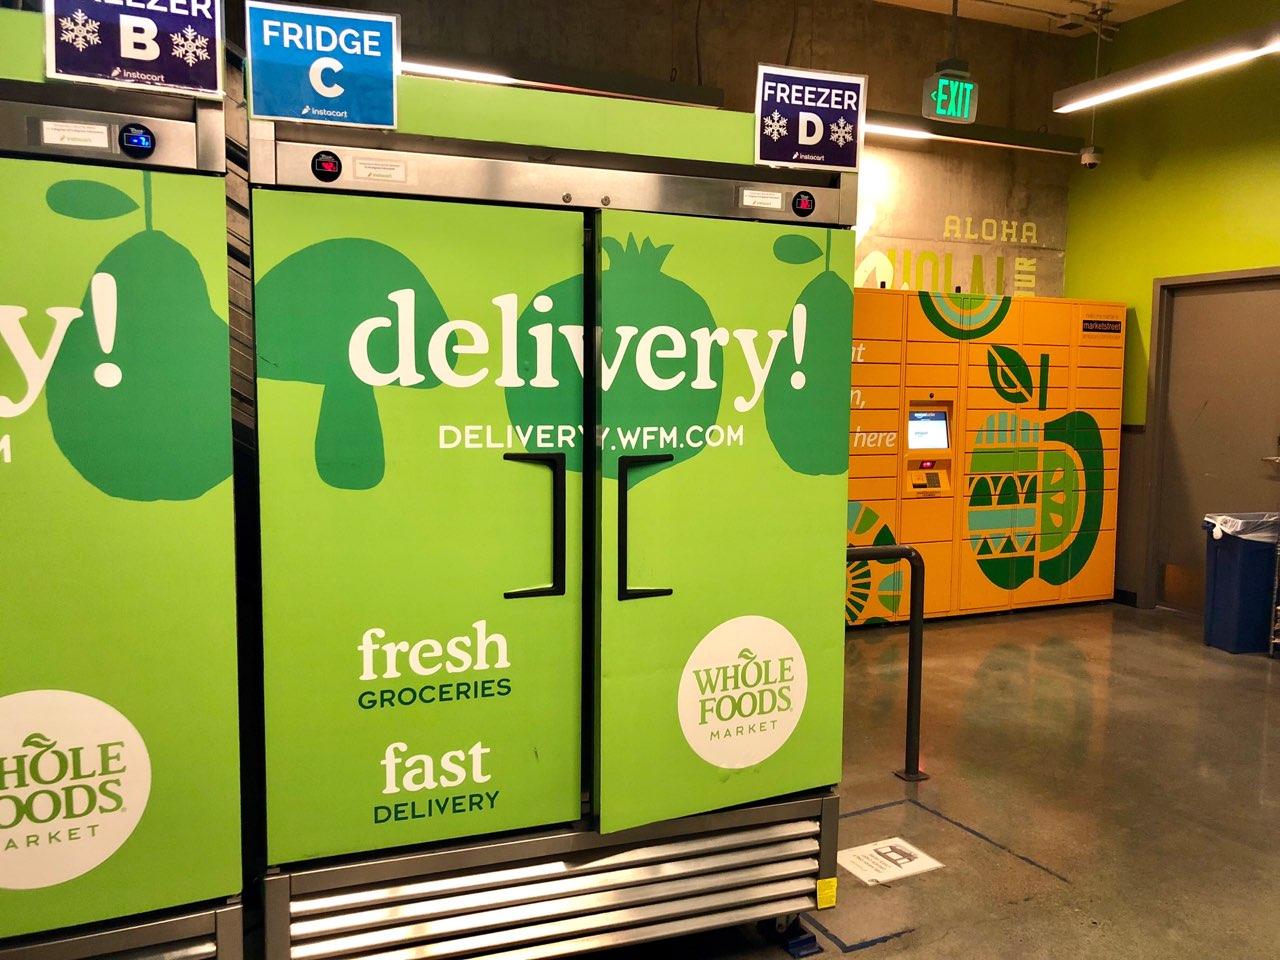 Amazon Whole Foods The Amazonization Of Whole Foods One Year In Techcrunch